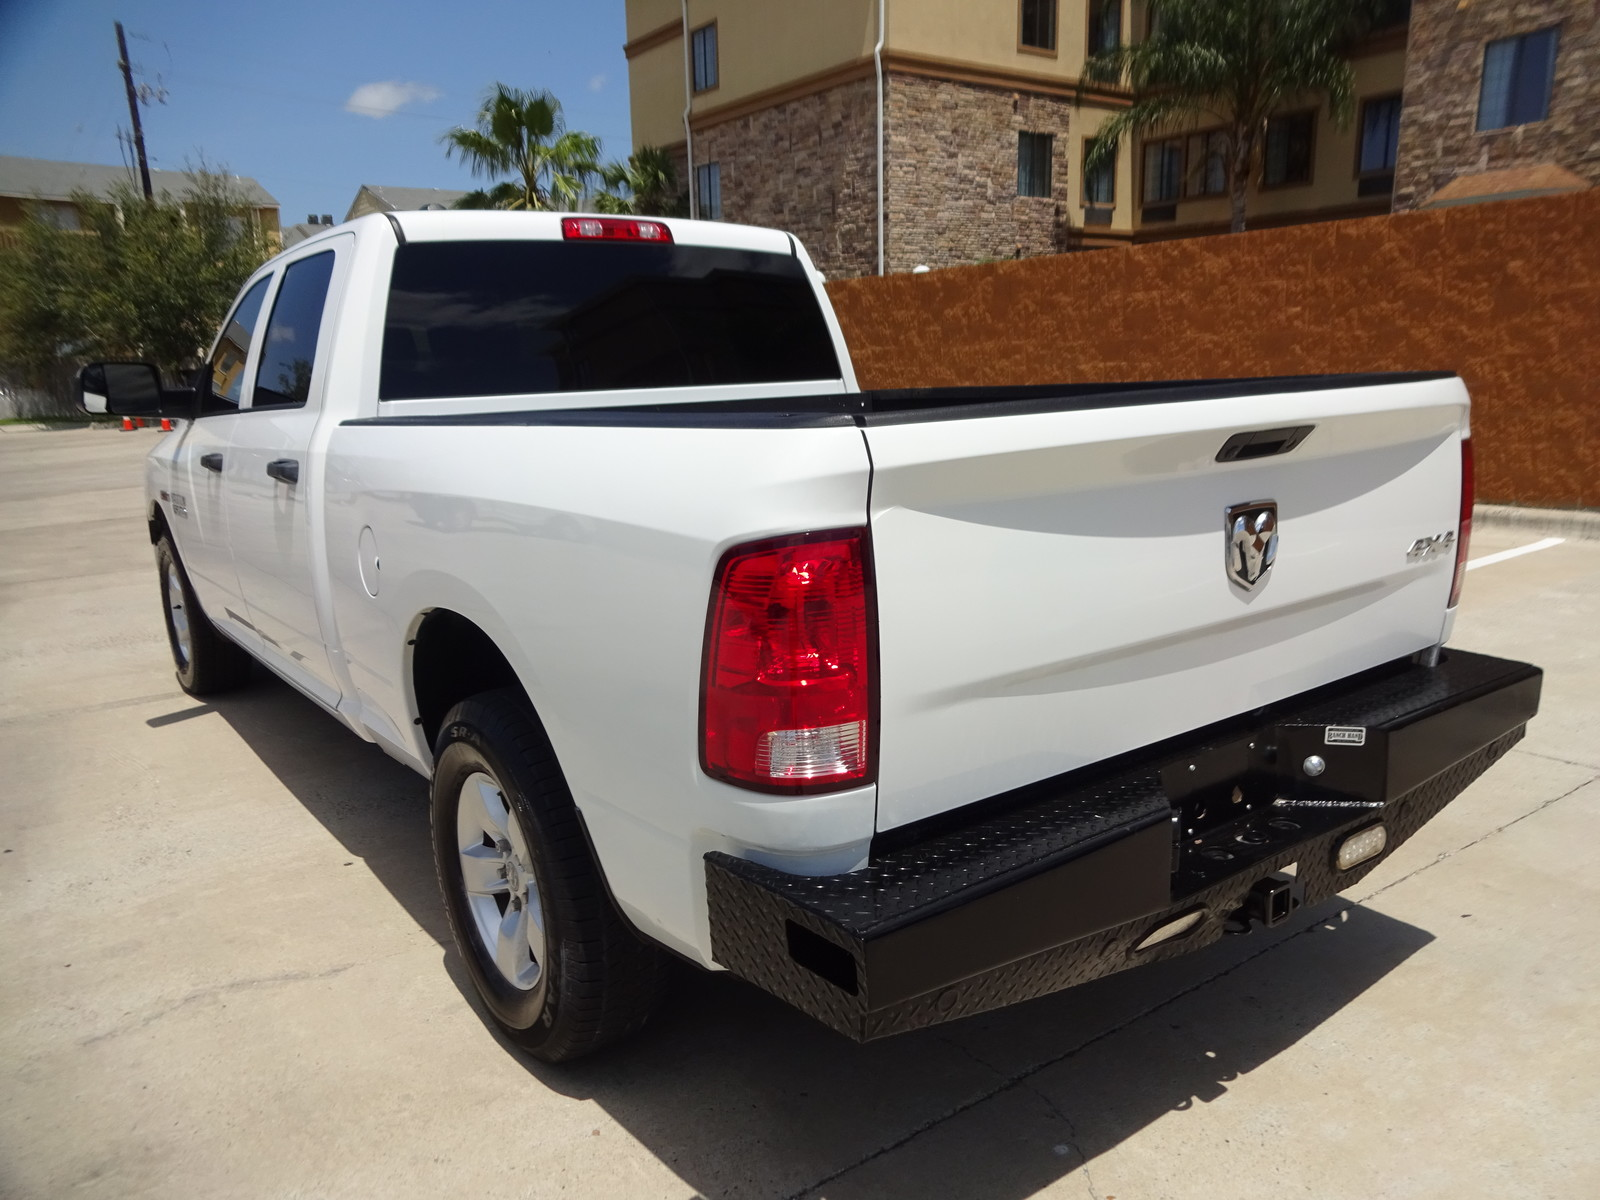 2014 ram 1500 tradesman crewcab 4x4 v6 ecodiesel engine black interior for sale in corpus. Black Bedroom Furniture Sets. Home Design Ideas